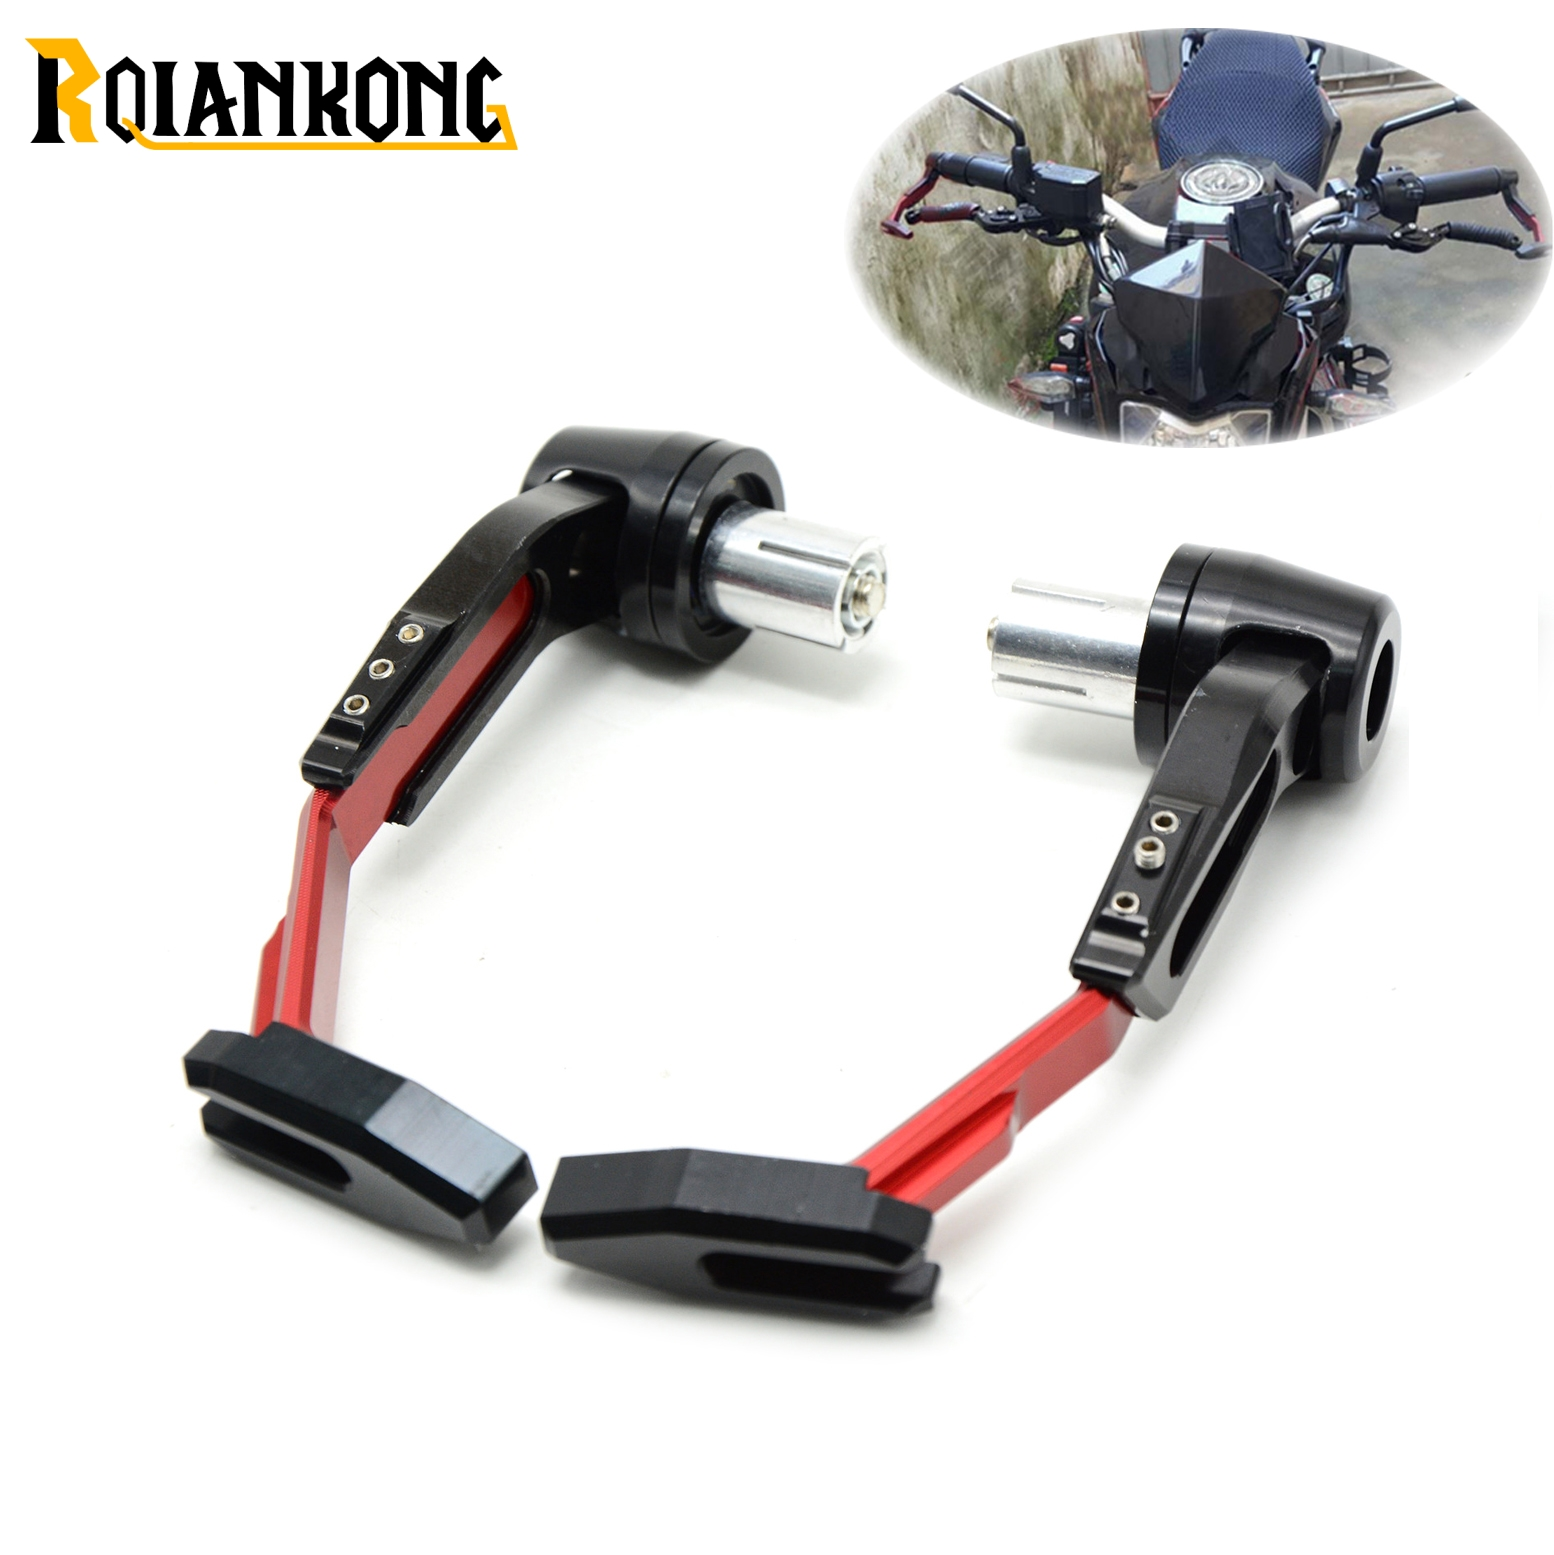 Universal 7/822mm Motorcycle Handlebar Clutch Brake Lever Protect Guard for Aprilia RSV MILLE RSV4 1000 R RR Factory APRC ABS billet short folding brake clutch levers for aprilia dorsoduro 750 1200 fighter tuono 1000 rsv 1000 r mille sl1000 falco etv1200